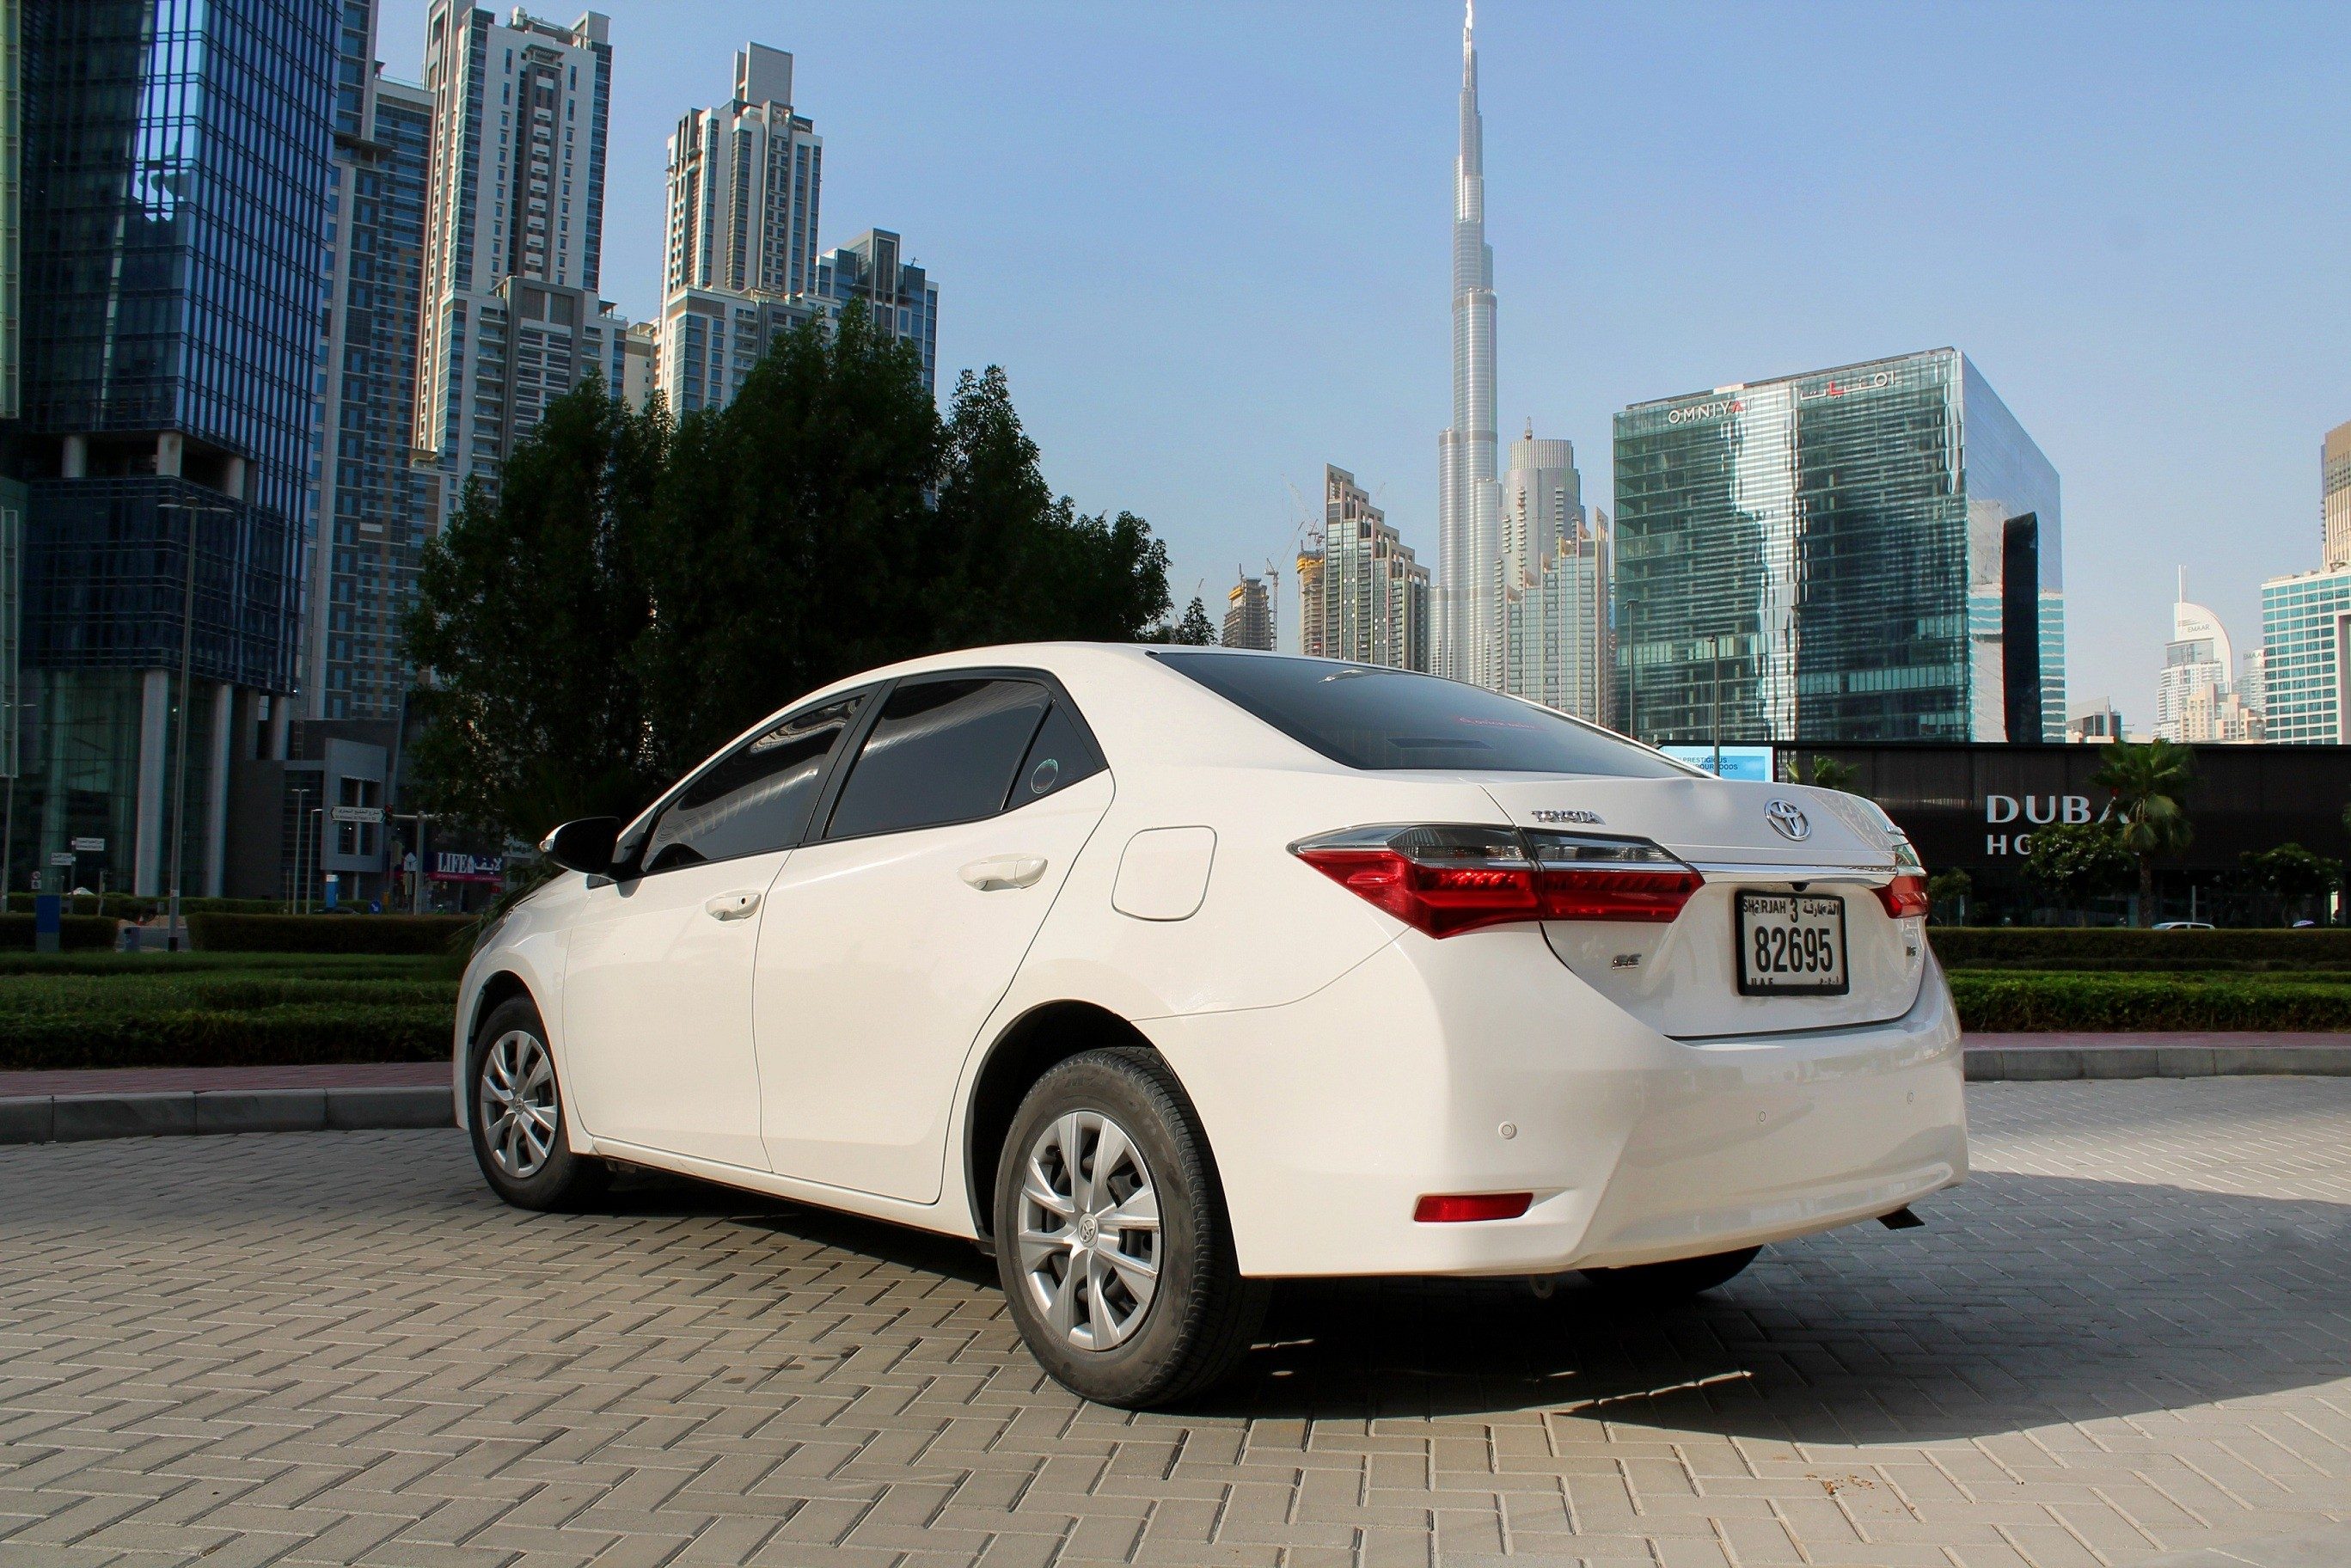 https://quickdrive.ae/uploads/2020/07/22/3 corolla.jpg